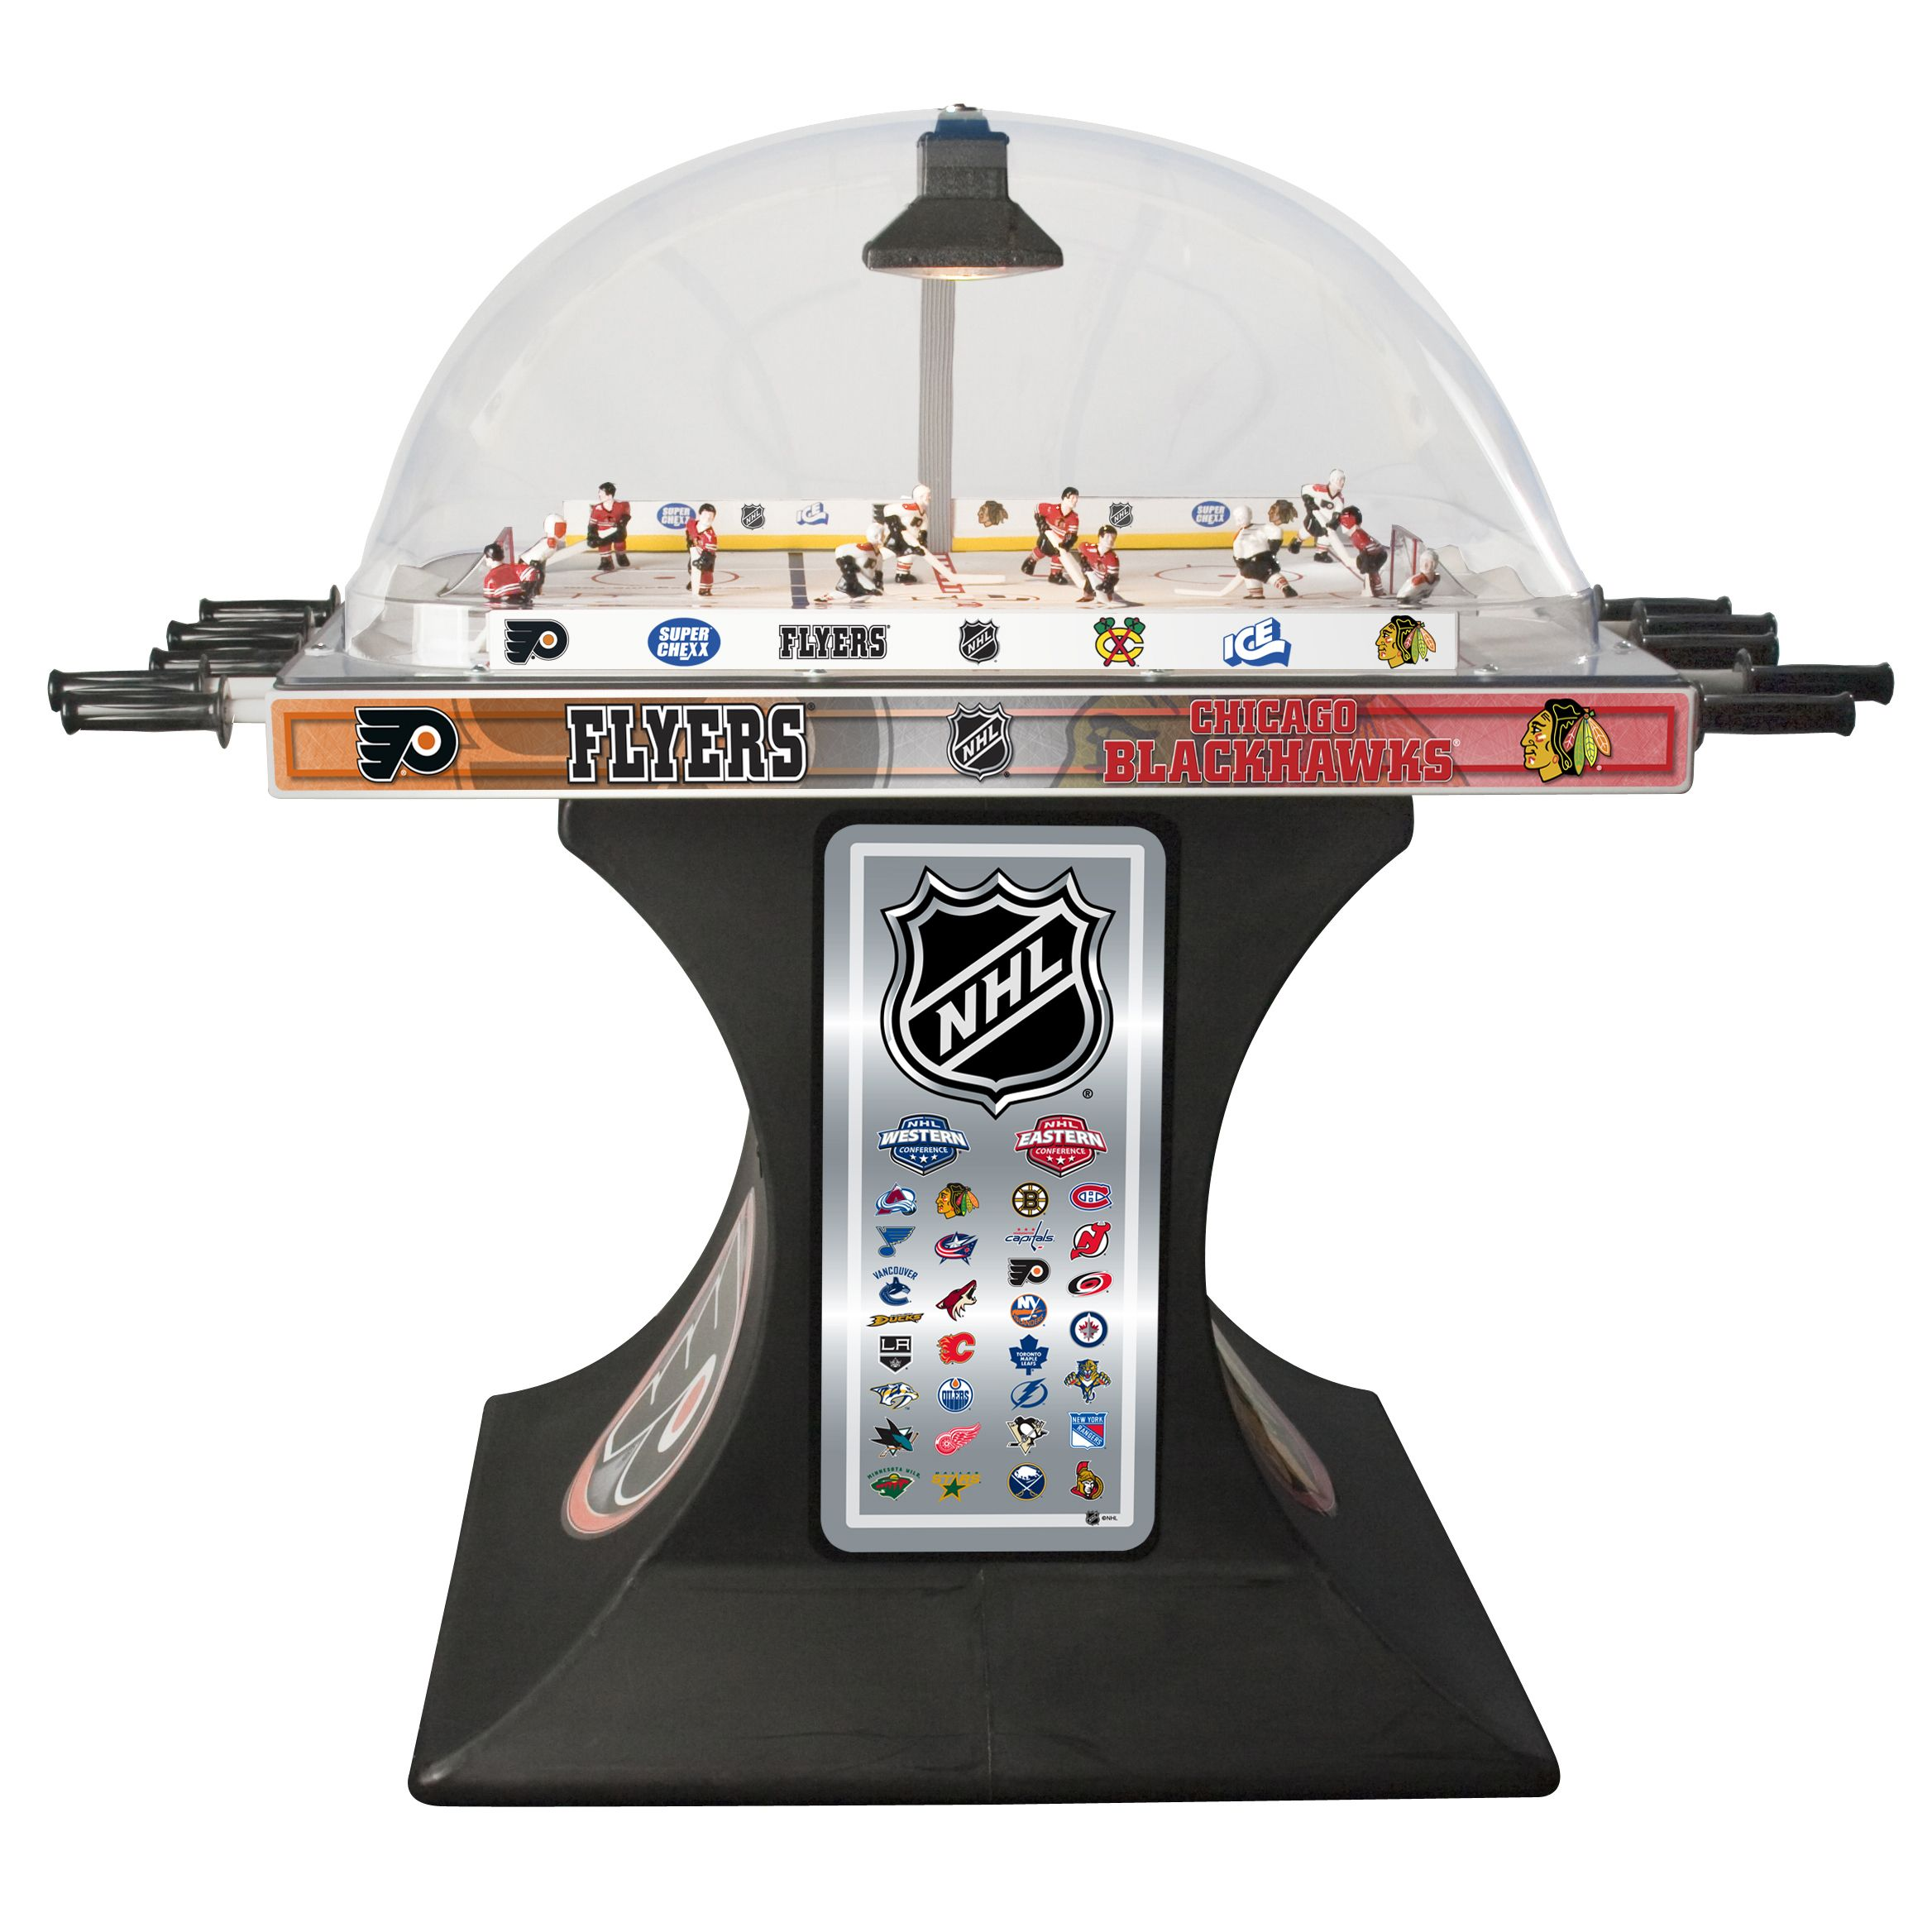 I have always wanted a Super Chexx dome hockey game for my